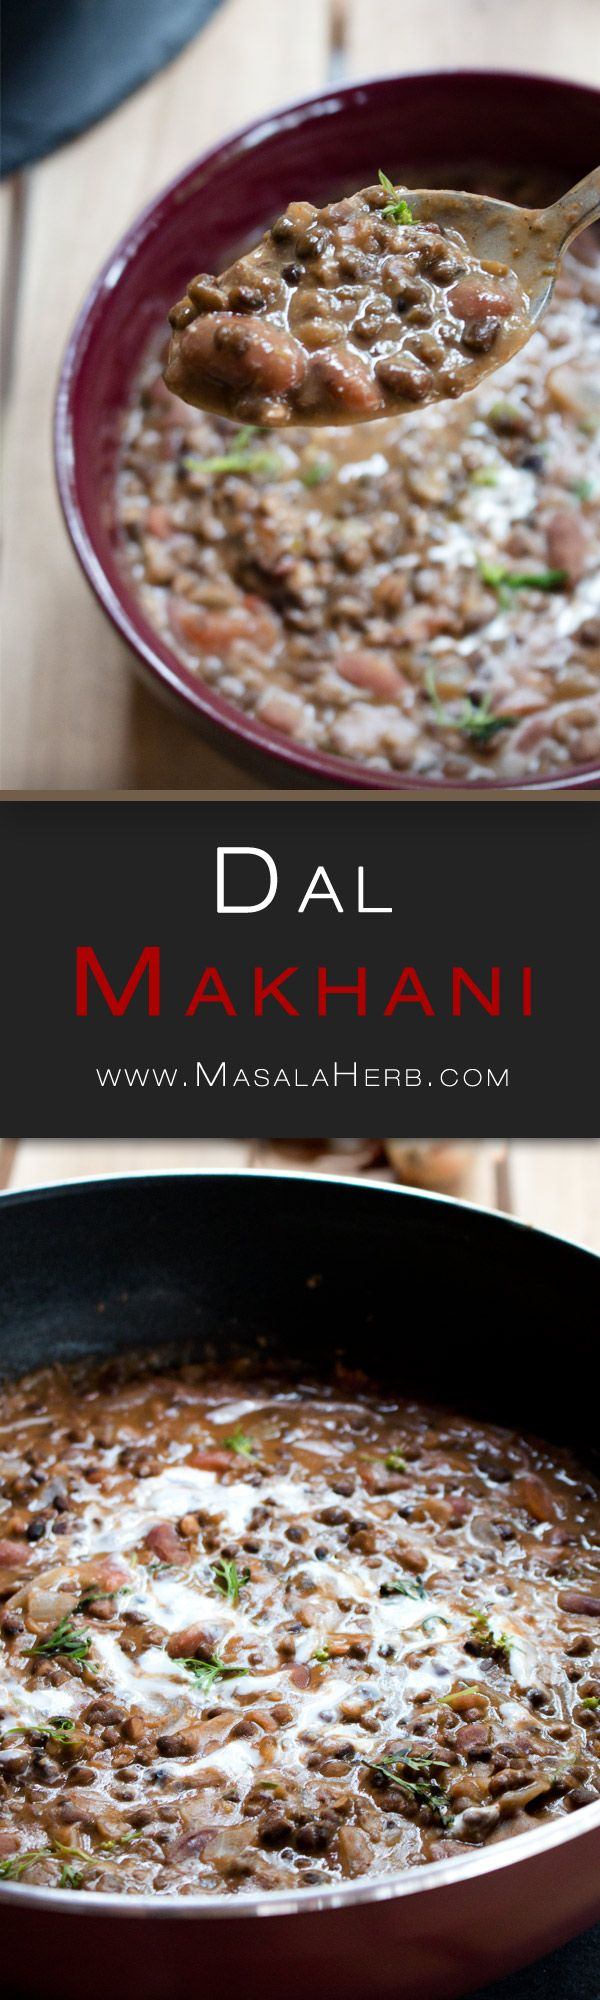 641 best vegetarian indian food images on pinterest indian recipes dal makhani recipe how to make dal makhani curry video spiced indian butter forumfinder